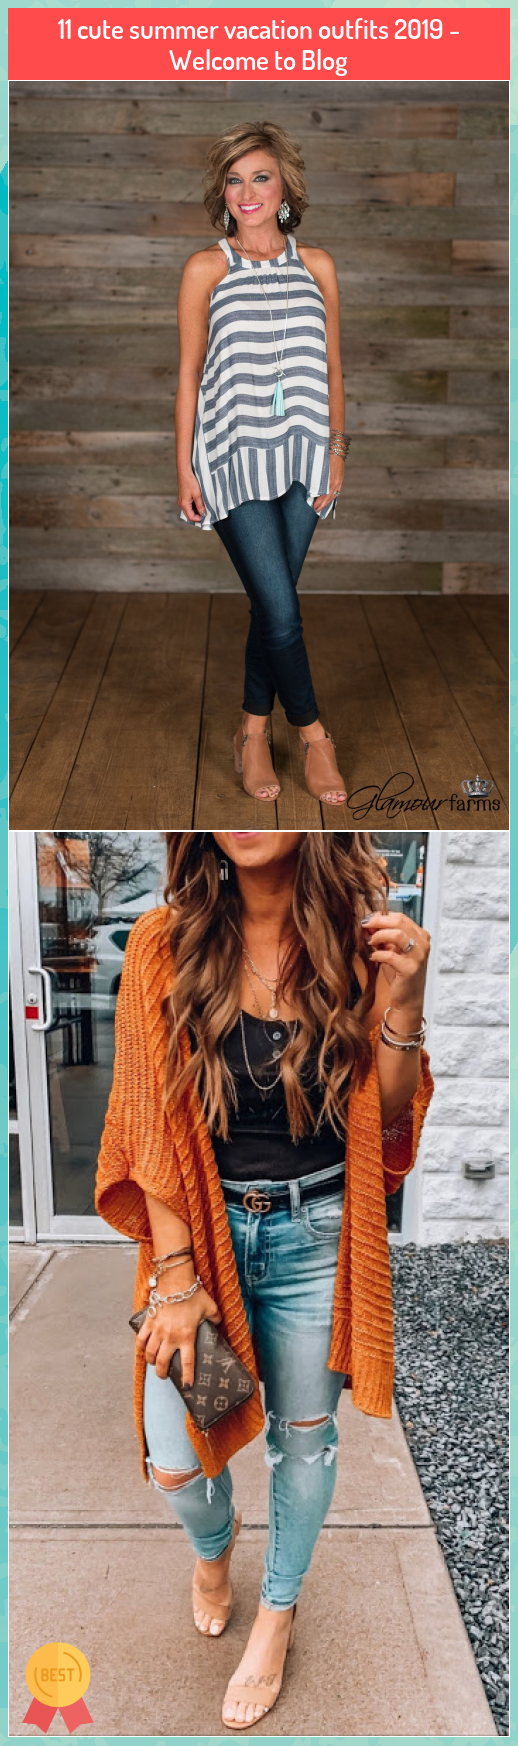 11 cute summer vacation outfits 2019 - Welcome to Blog #cute #summer #vacation #outfits #2019 #Welcome #Blog